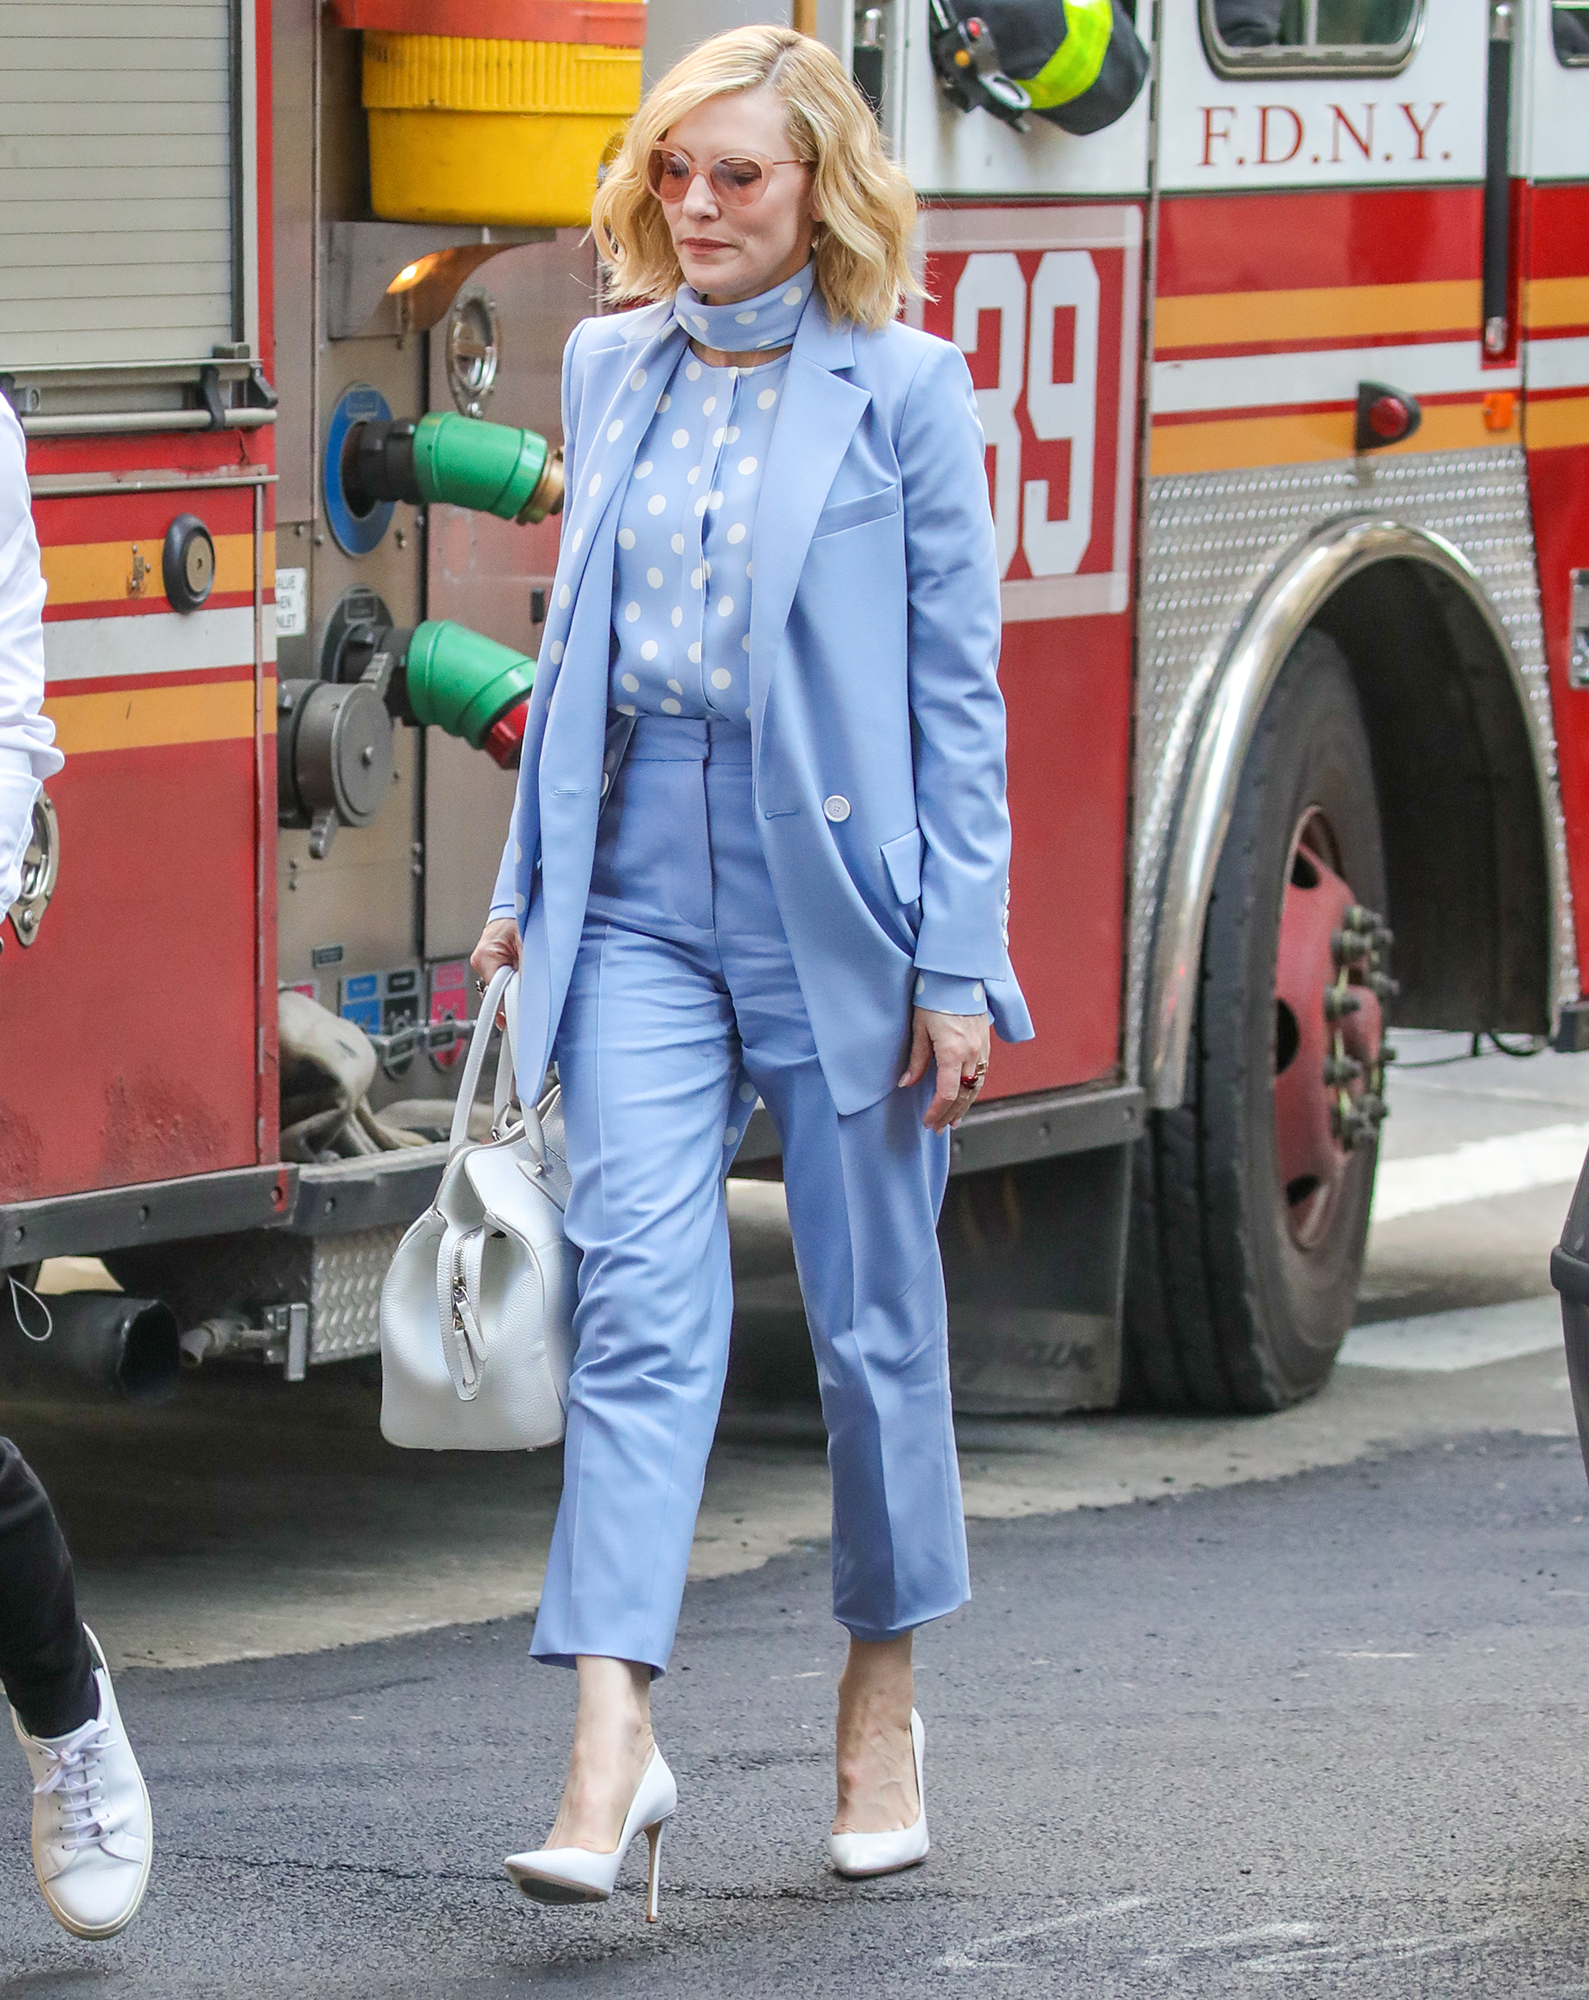 EXCLUSIVE: Cate Blanchett is Spotted Out and About in New York City